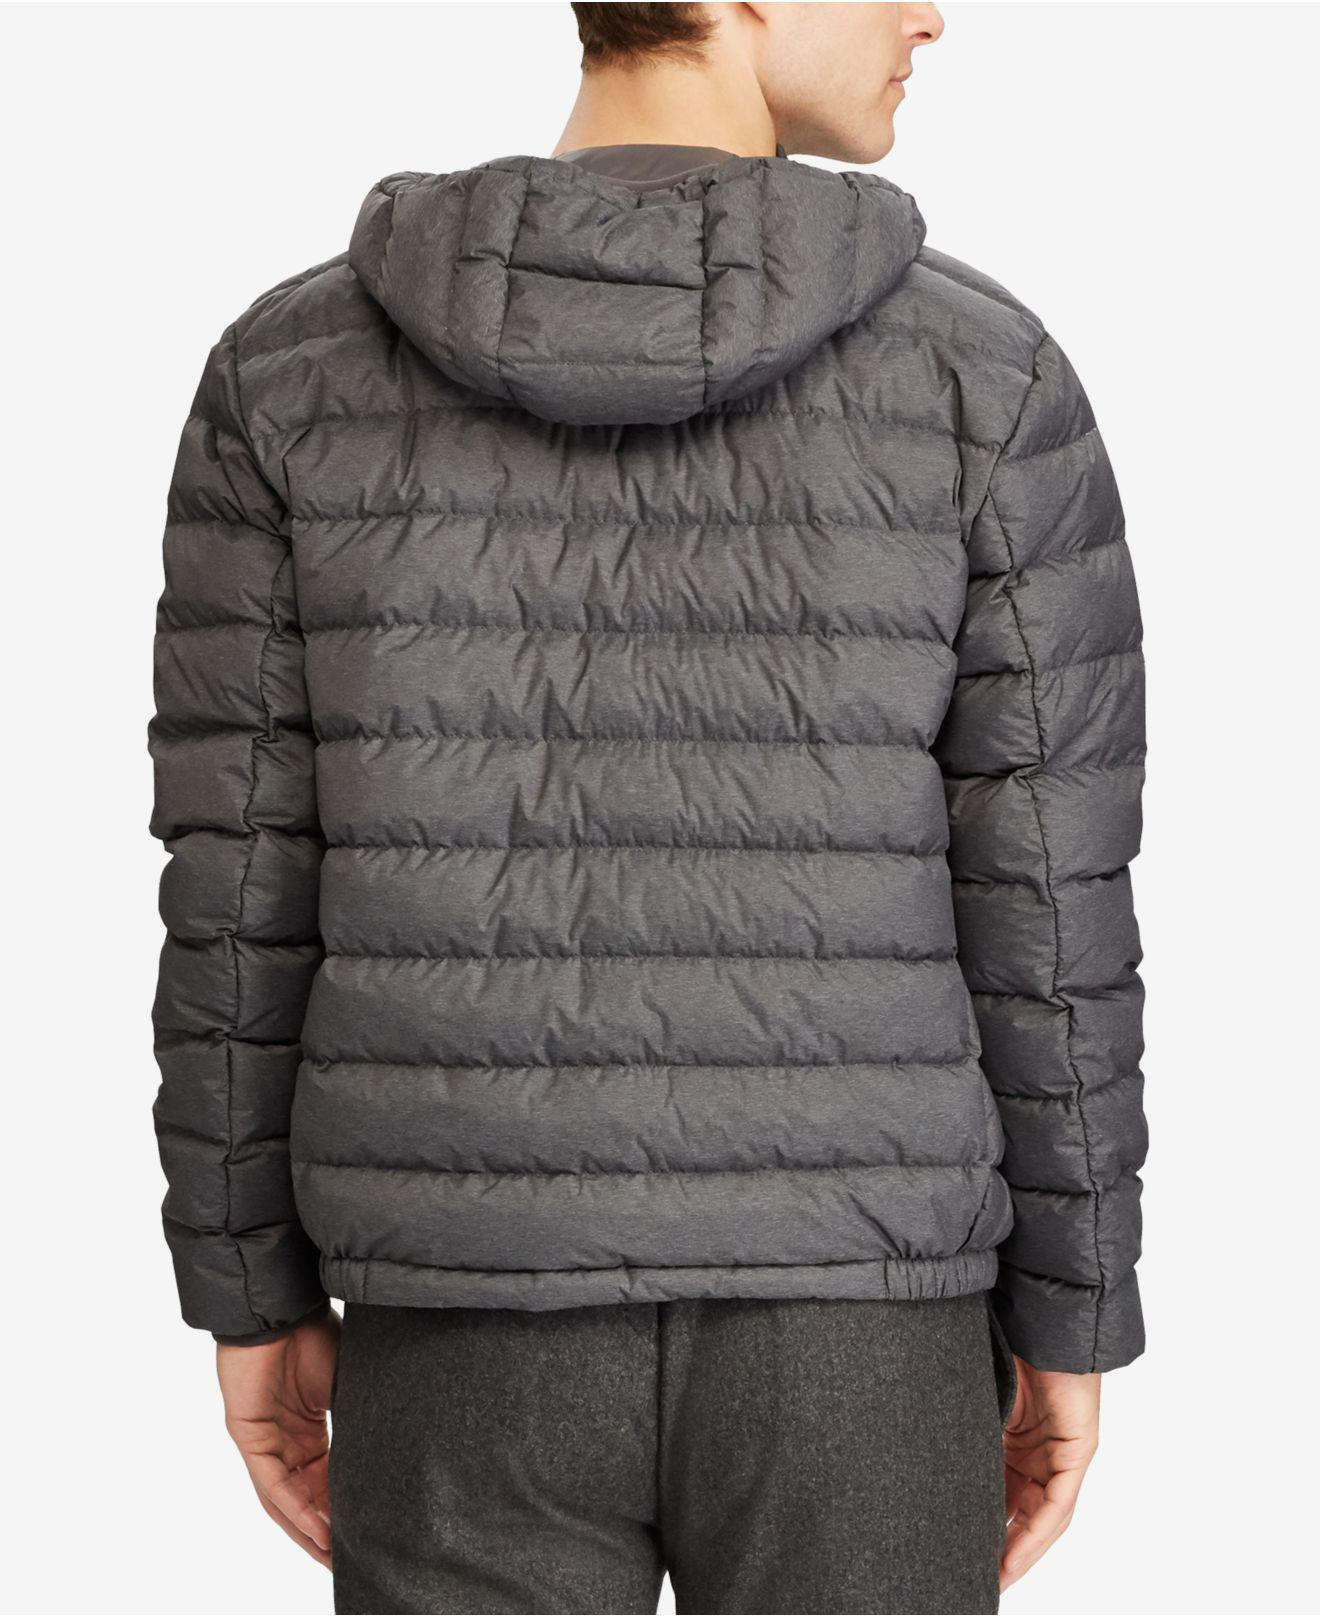 be1e2964e Polo Ralph Lauren Big   Tall Packable Hooded Down Jacket in Gray for ...